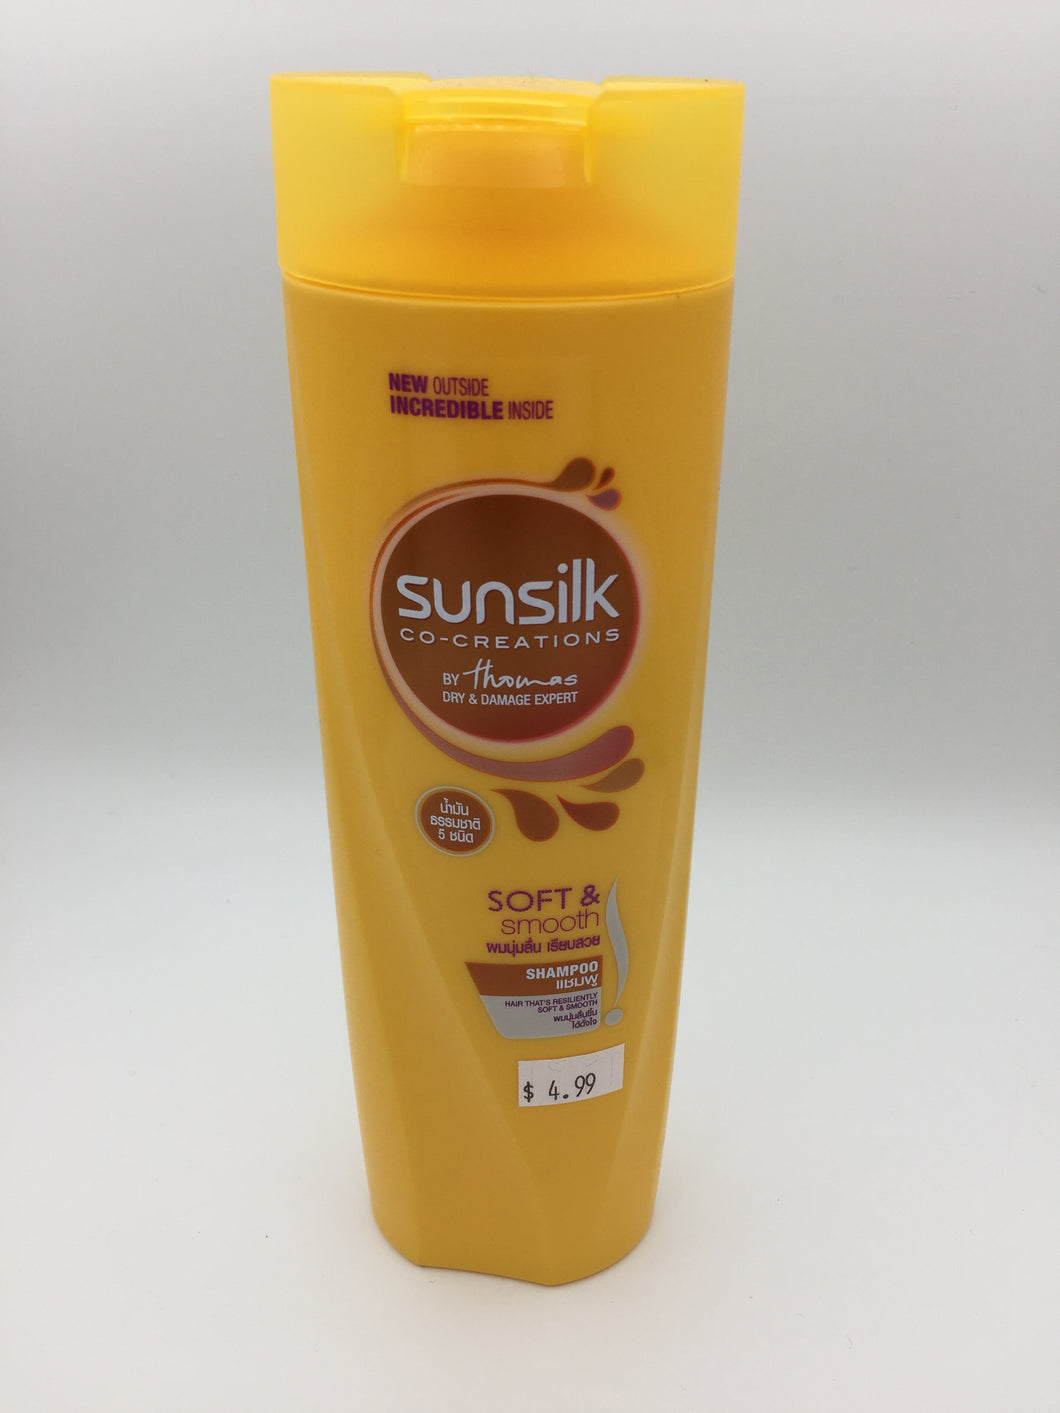 Sunsilk Co-Creations by Dry & Damage Expert